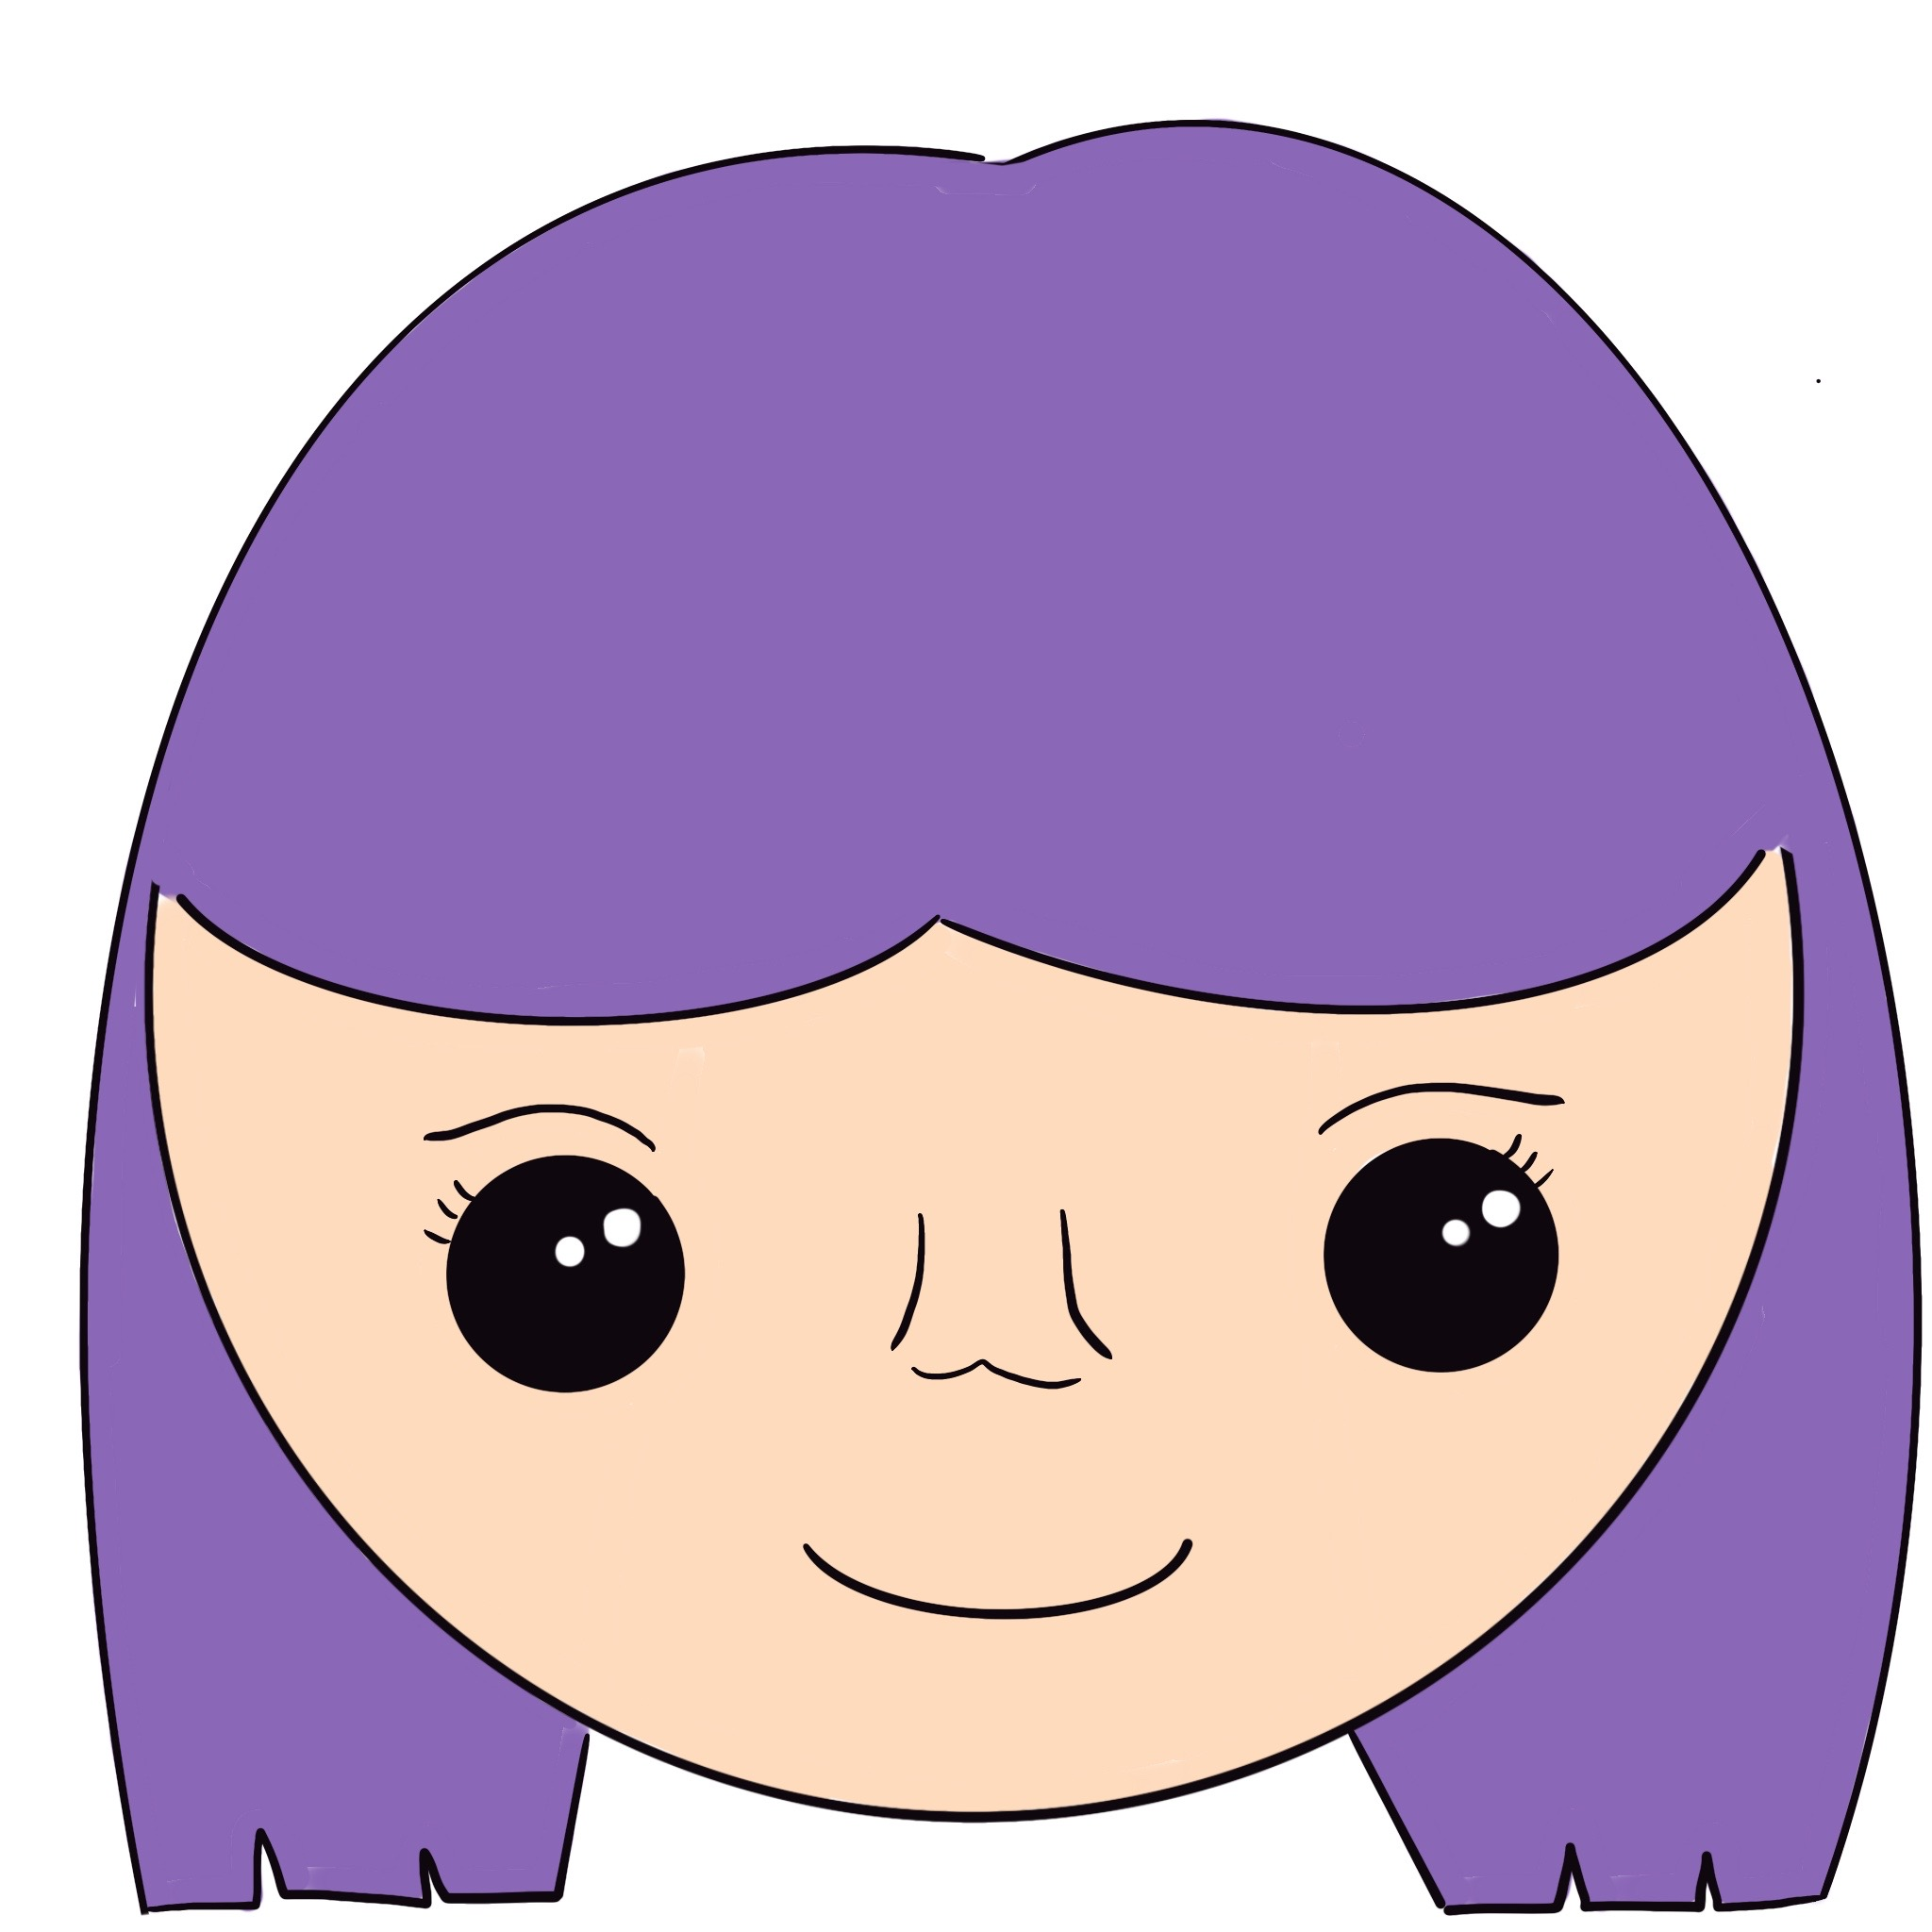 Become a purple person